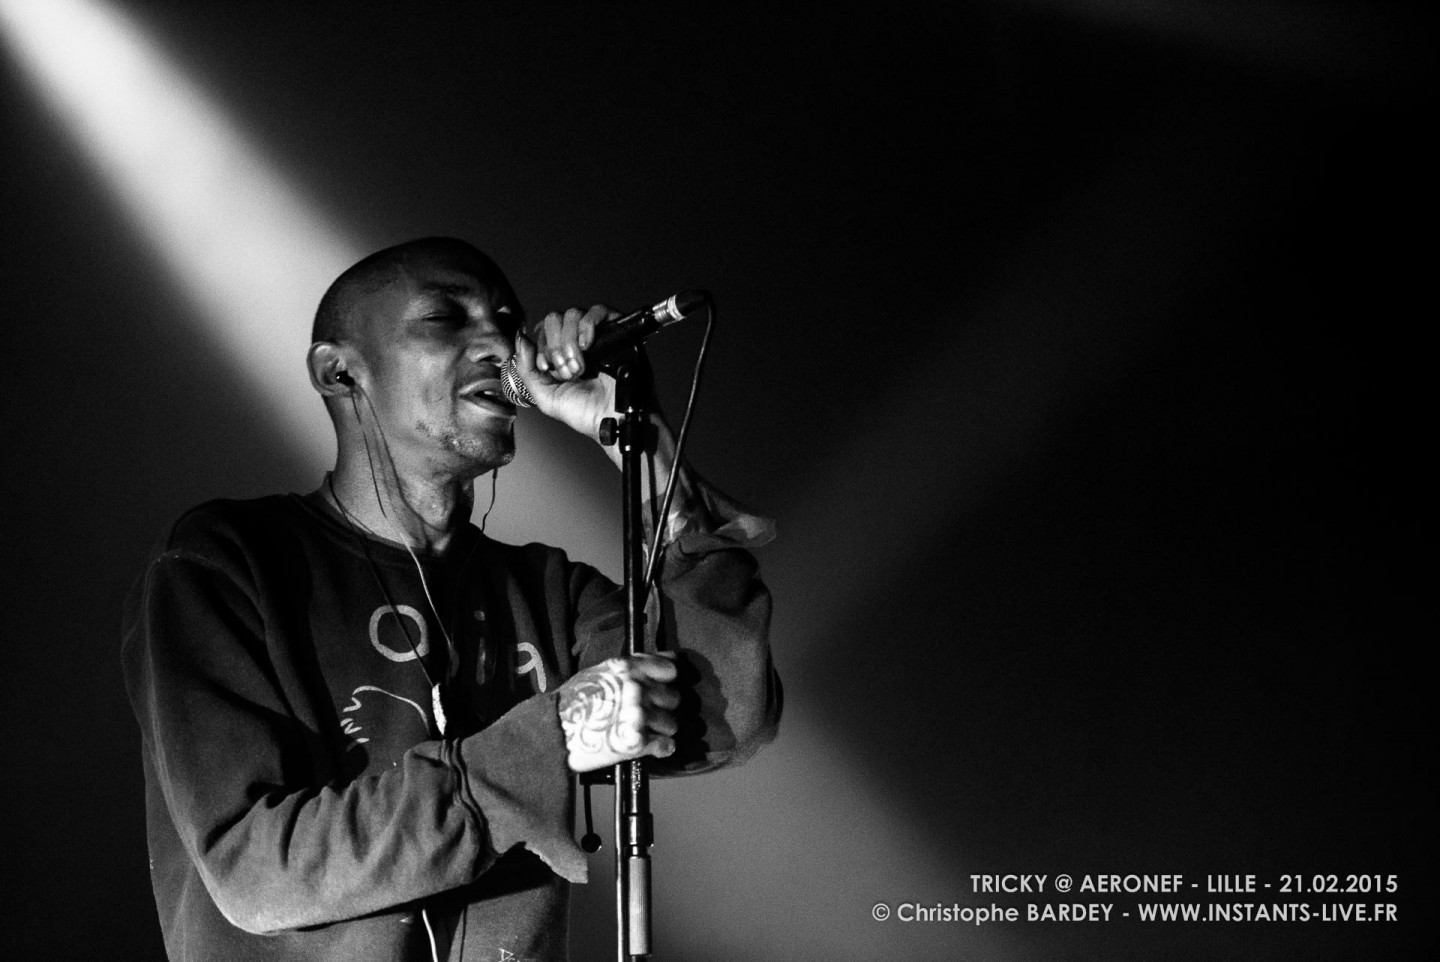 TRICKY - Concert @ Aéronef 2015